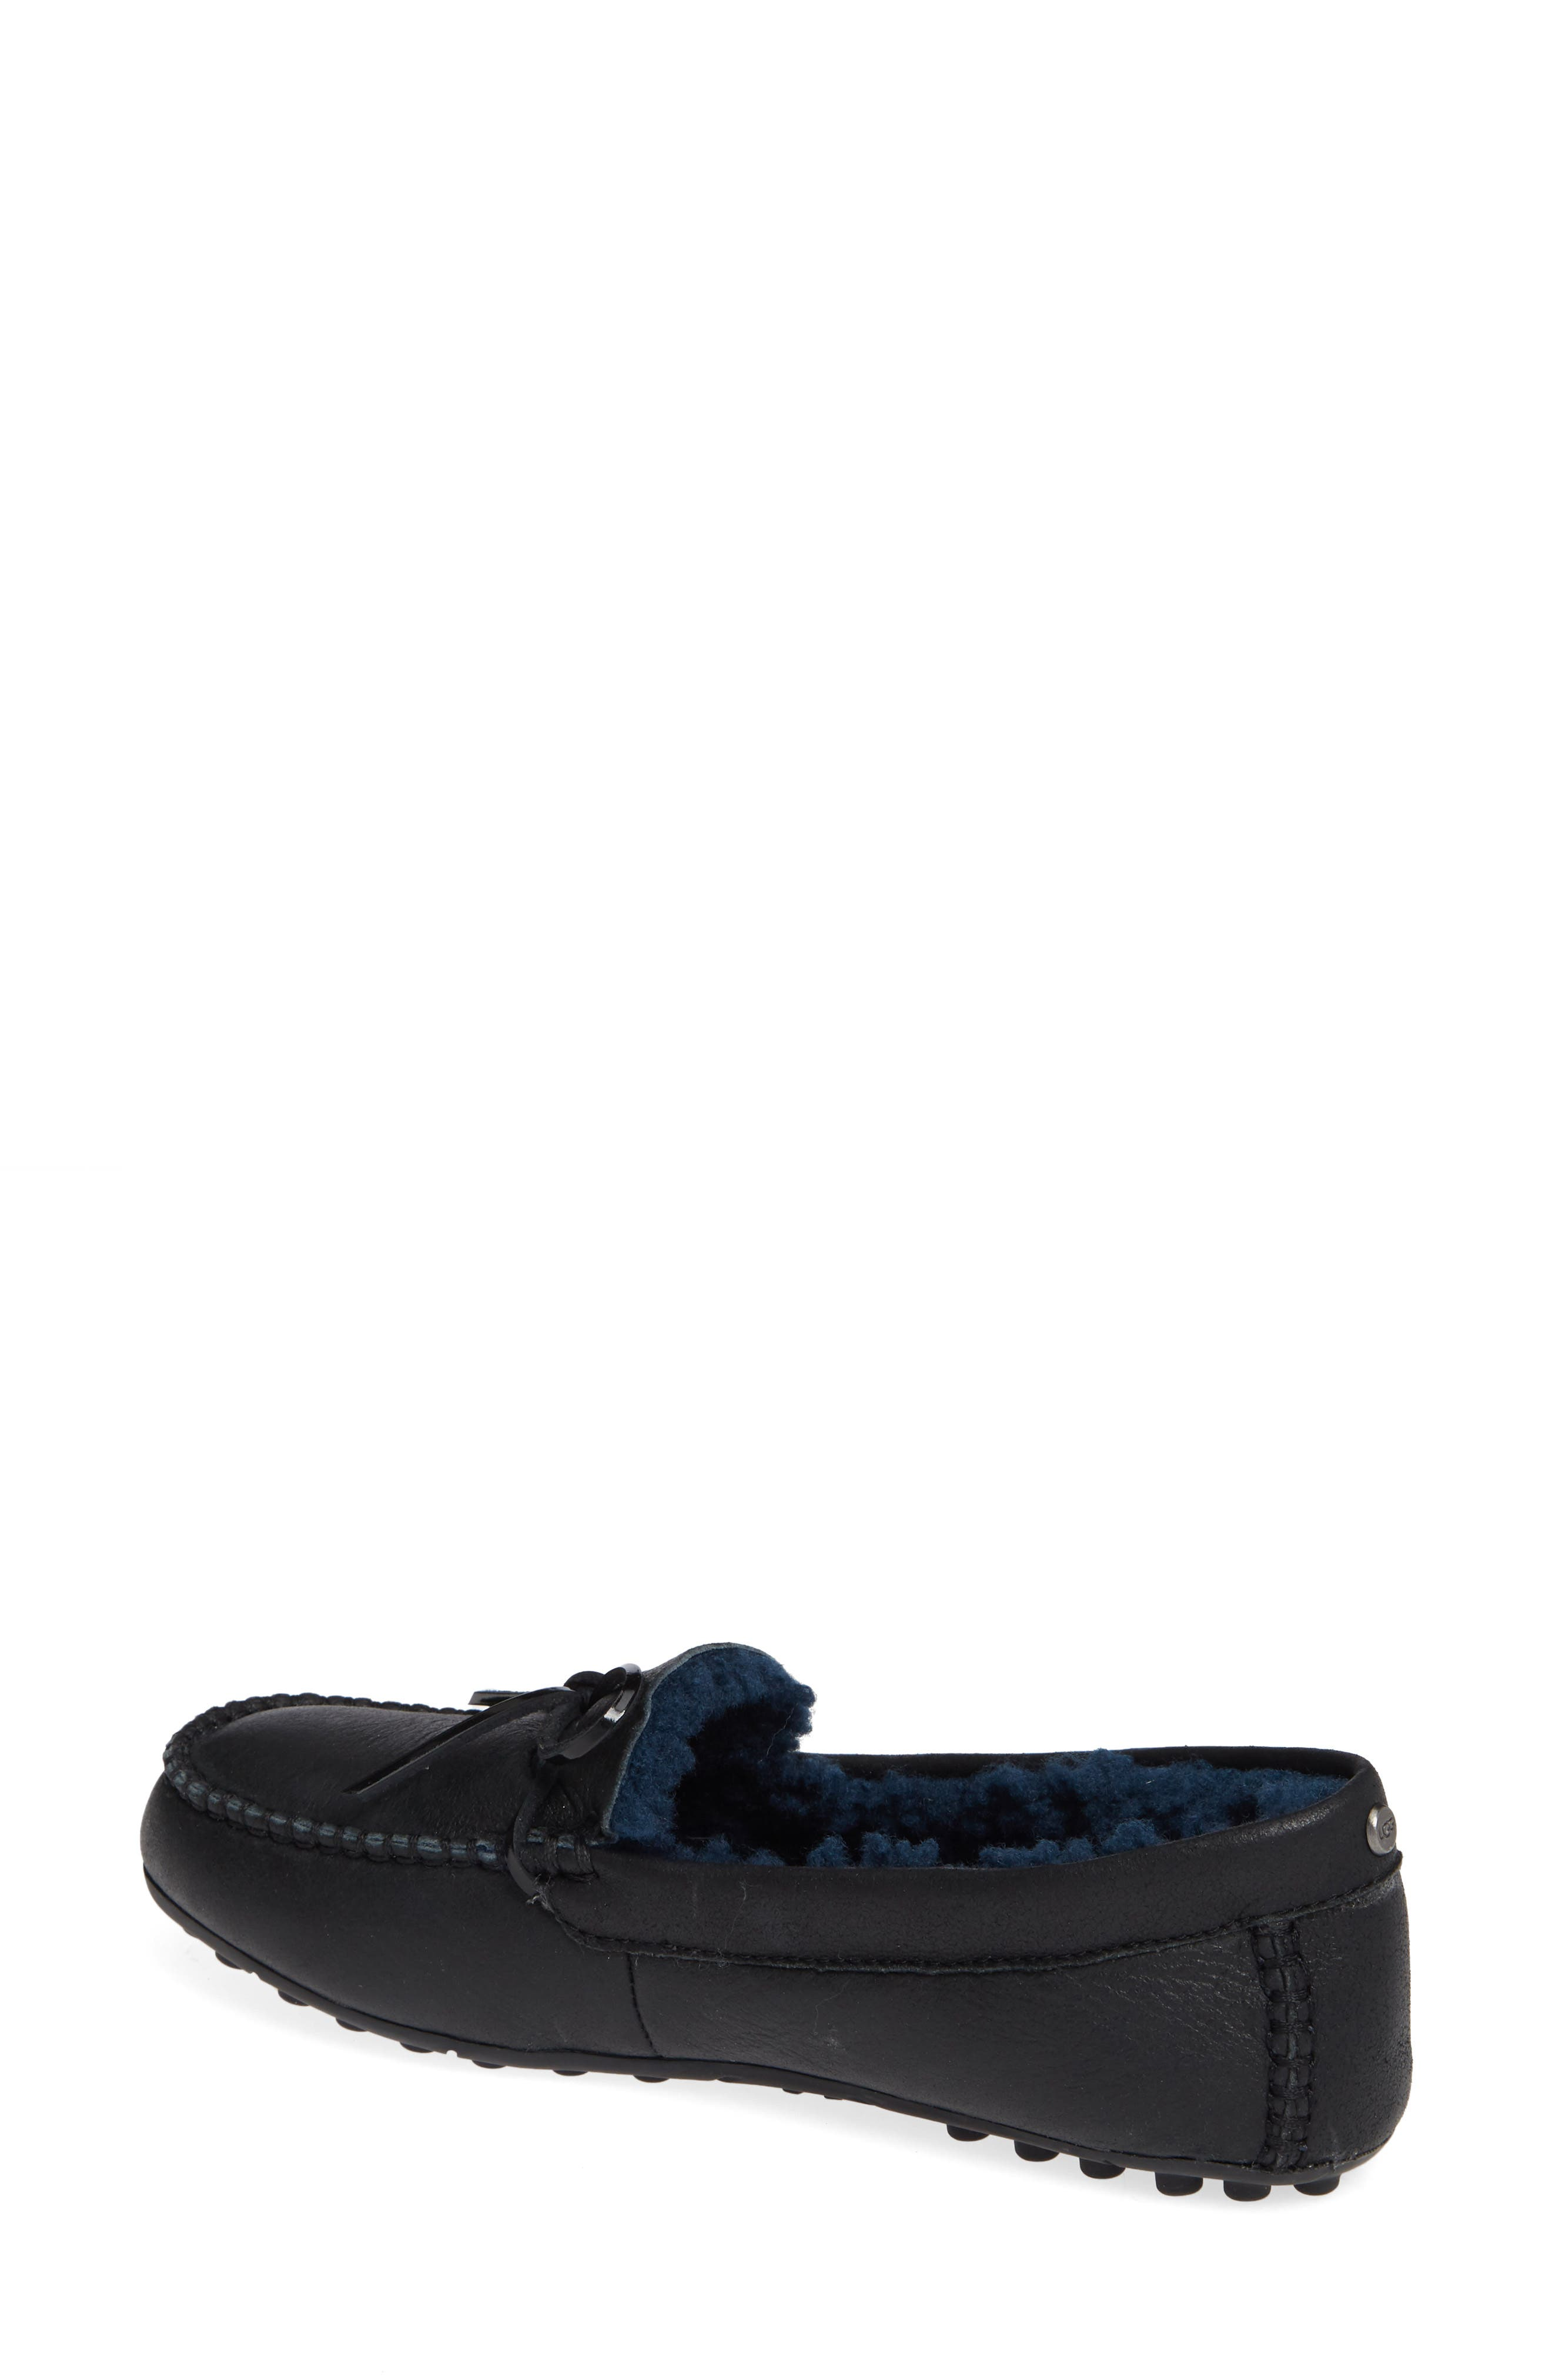 UGG<SUP>®</SUP>, Deluxe Loafer, Alternate thumbnail 2, color, BLACK LEATHER